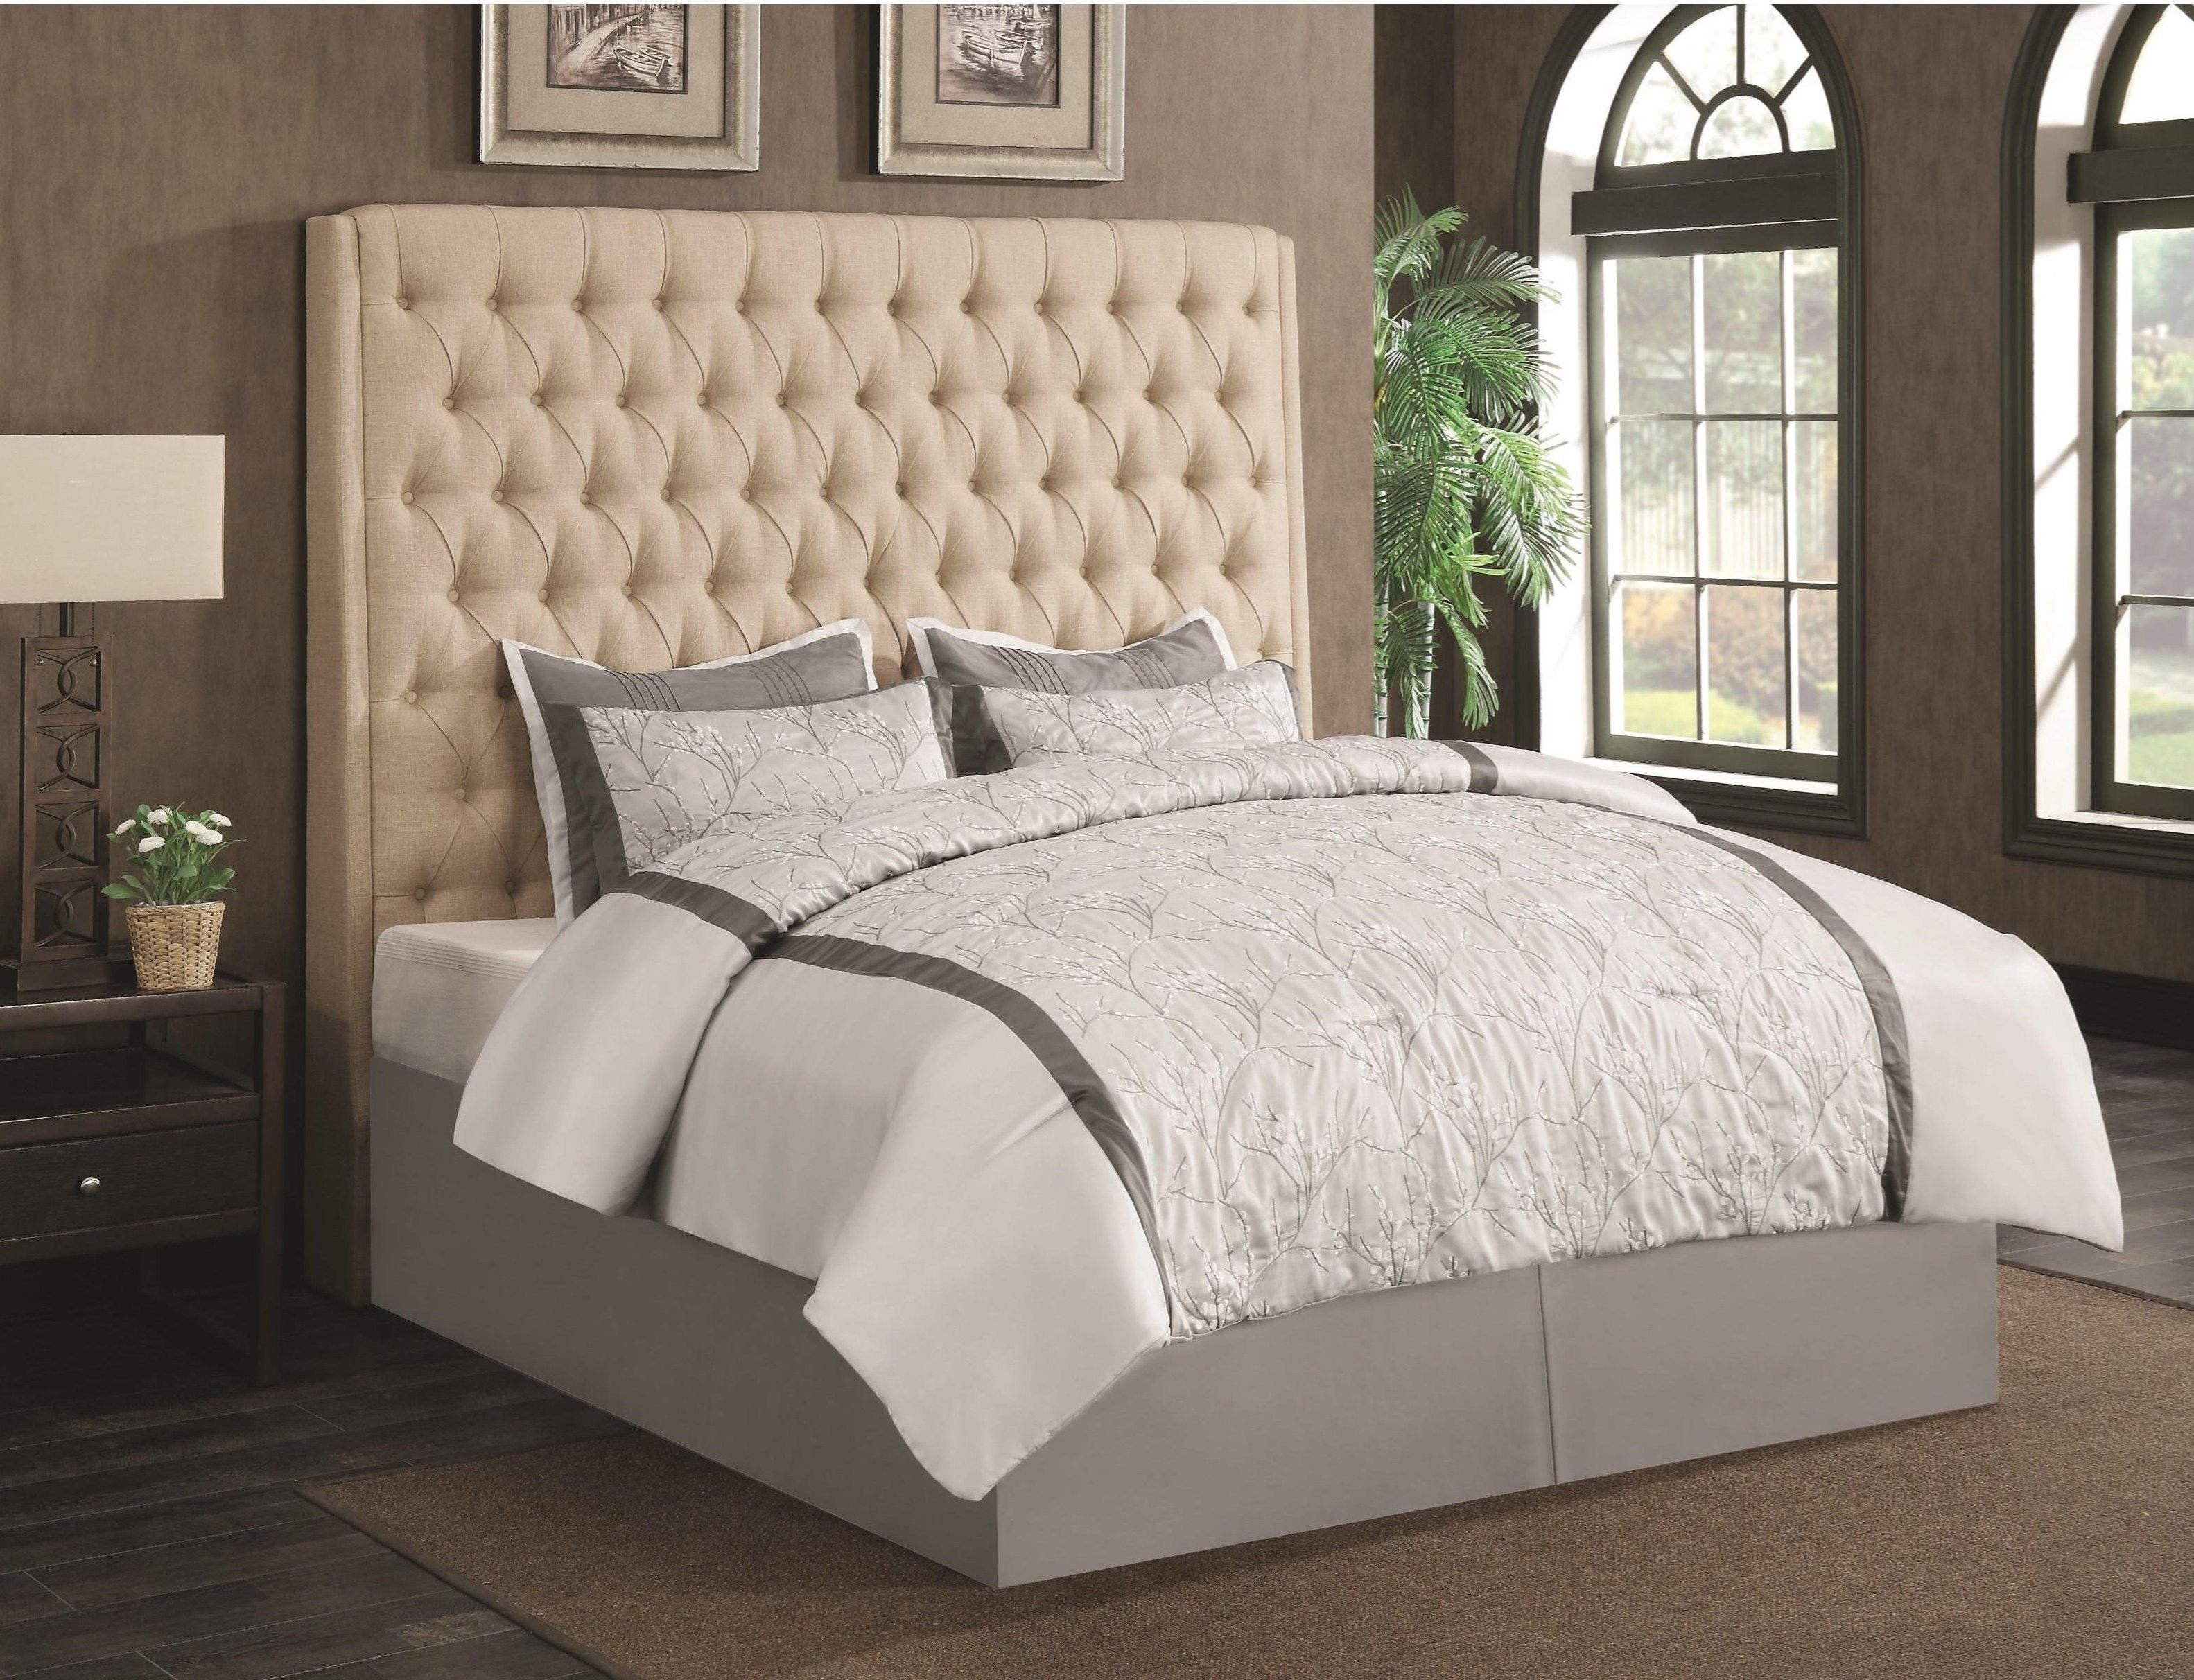 Best Camille Upholstered Headboard By Coaster 300722 Queen 400 x 300